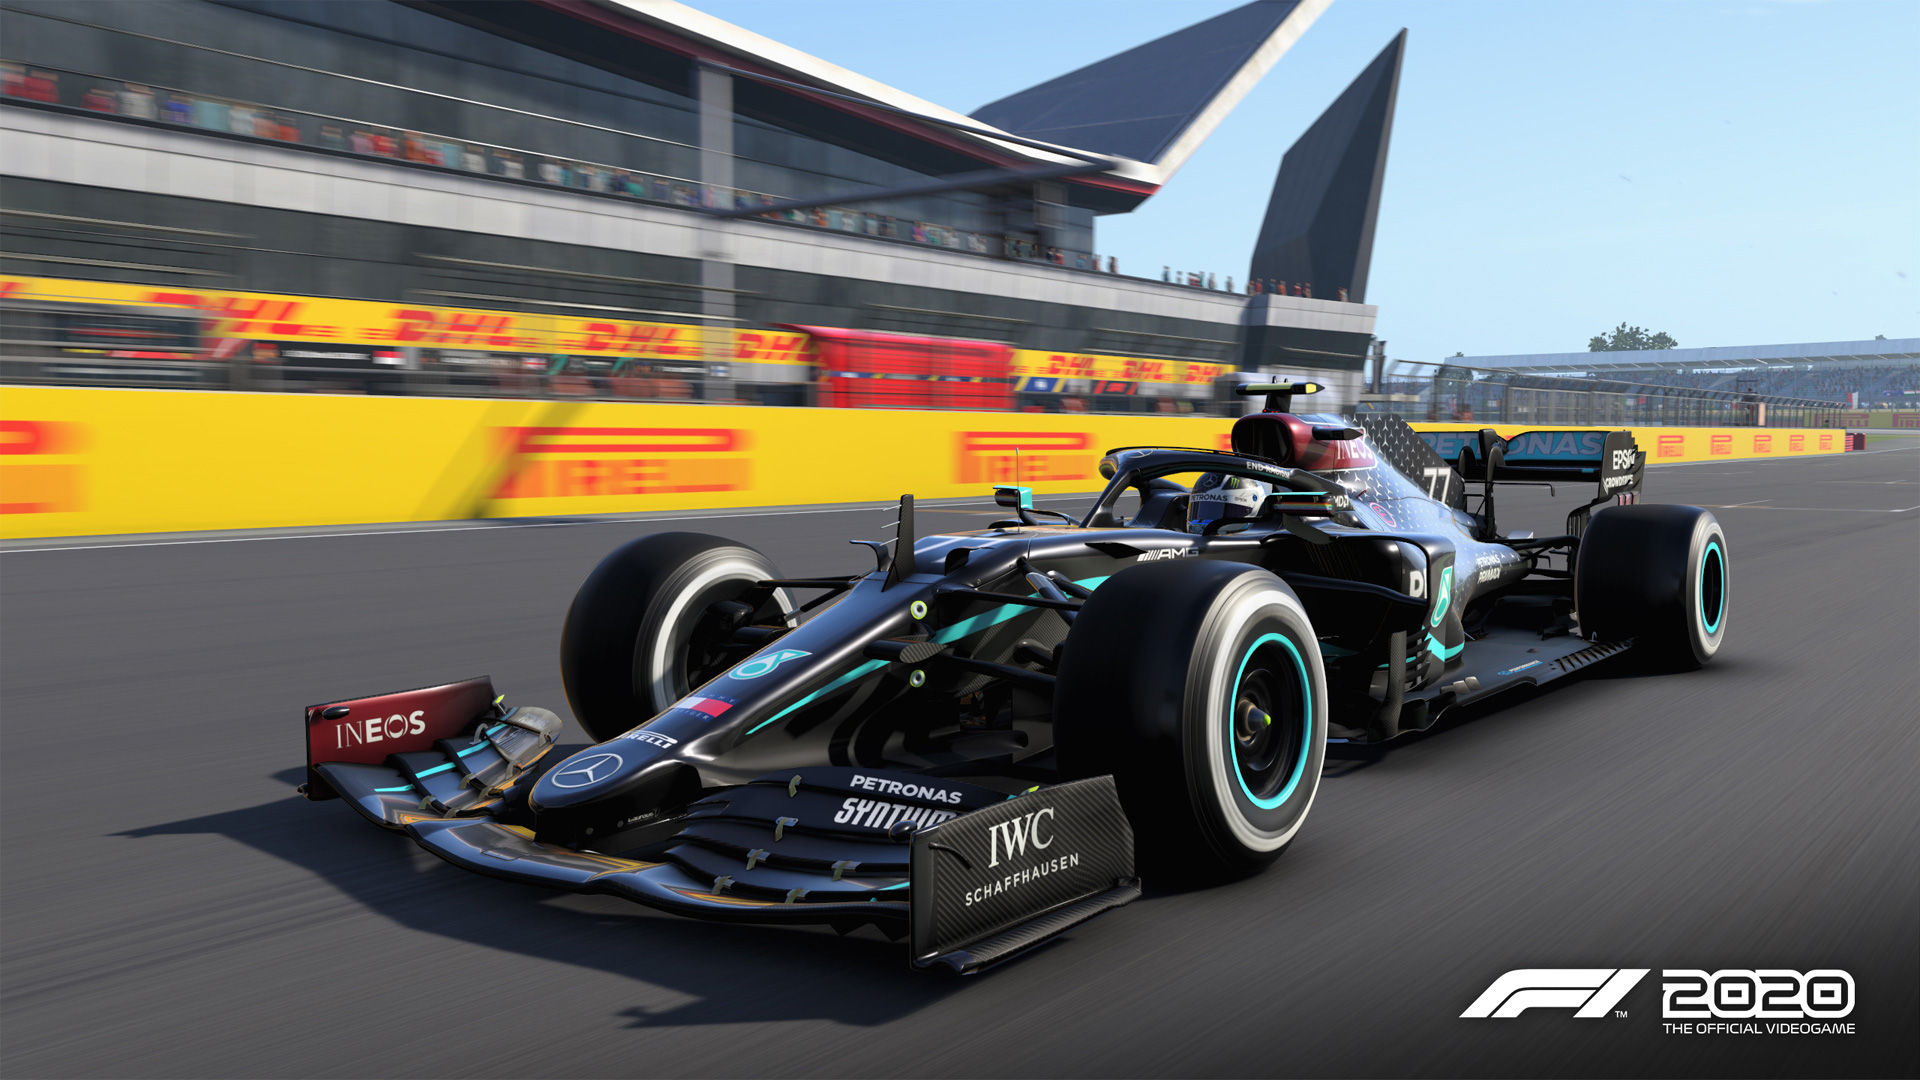 Codemasters Update F1 2020 Game With Mercedes New Black Livery Formula 1